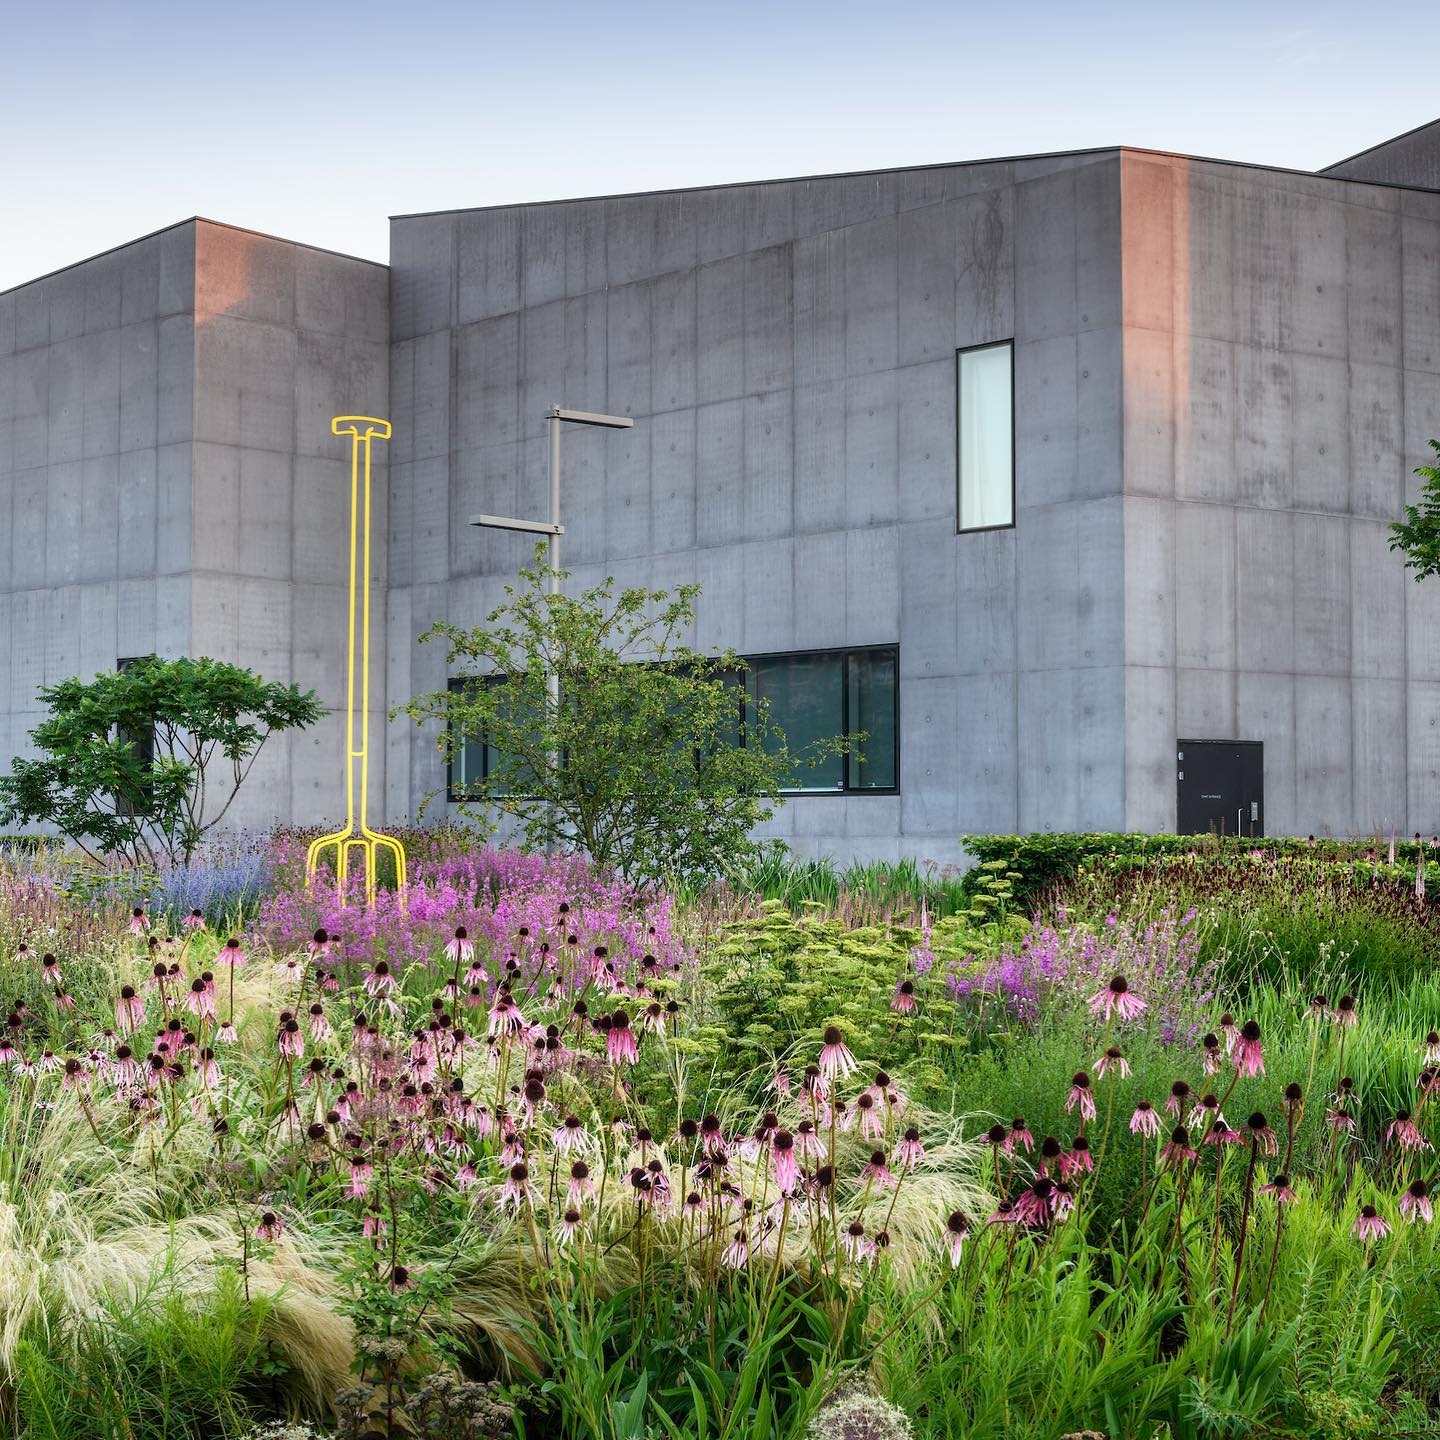 """The Hepworth Wakefield  Garden designed by @tomstuartsmith and expertly looked after by Cultural Gardener @katymerrington in @gardens_illustrated . Great article by @alysf ...The Gardens Illustrated Masterclass 2021 #1""""How to make a year-round flower garden""""With Katy Merrington, Cultural Gardener at The Hepworth Wakefield is available to book via the Gardens Illustrated website....#katymerrington #hepworthwakefield #hepworthwakefieldgarden #tomstuartsmith #tomstuartsmithstudio #gardensillustrated #gardenpgotographer #gardenphotography"""